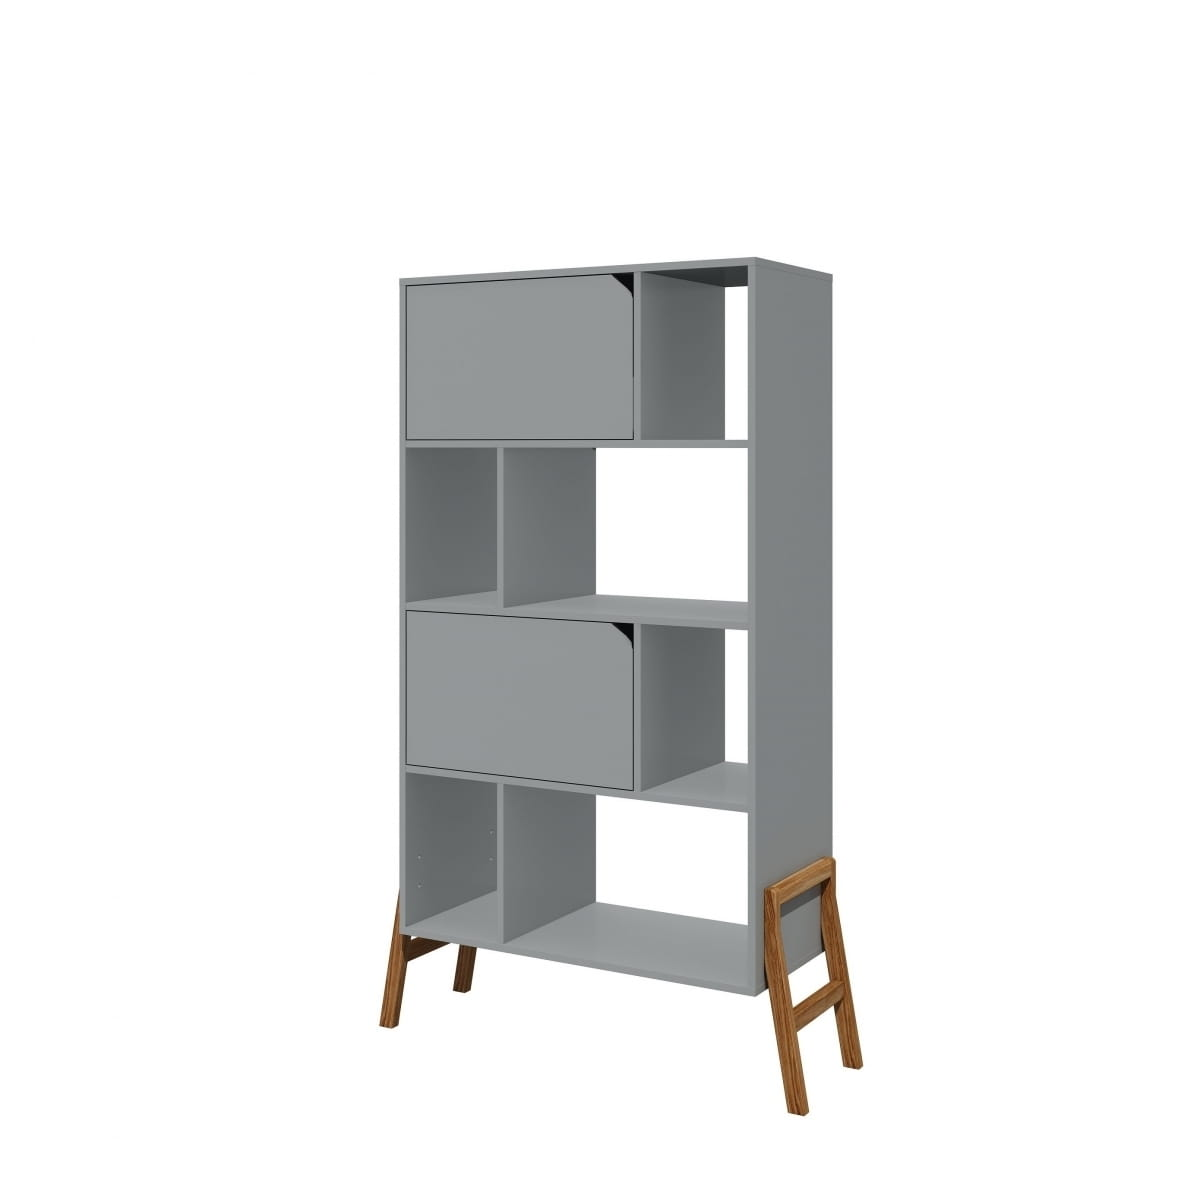 _lotta_gray_bookcase02.jpg